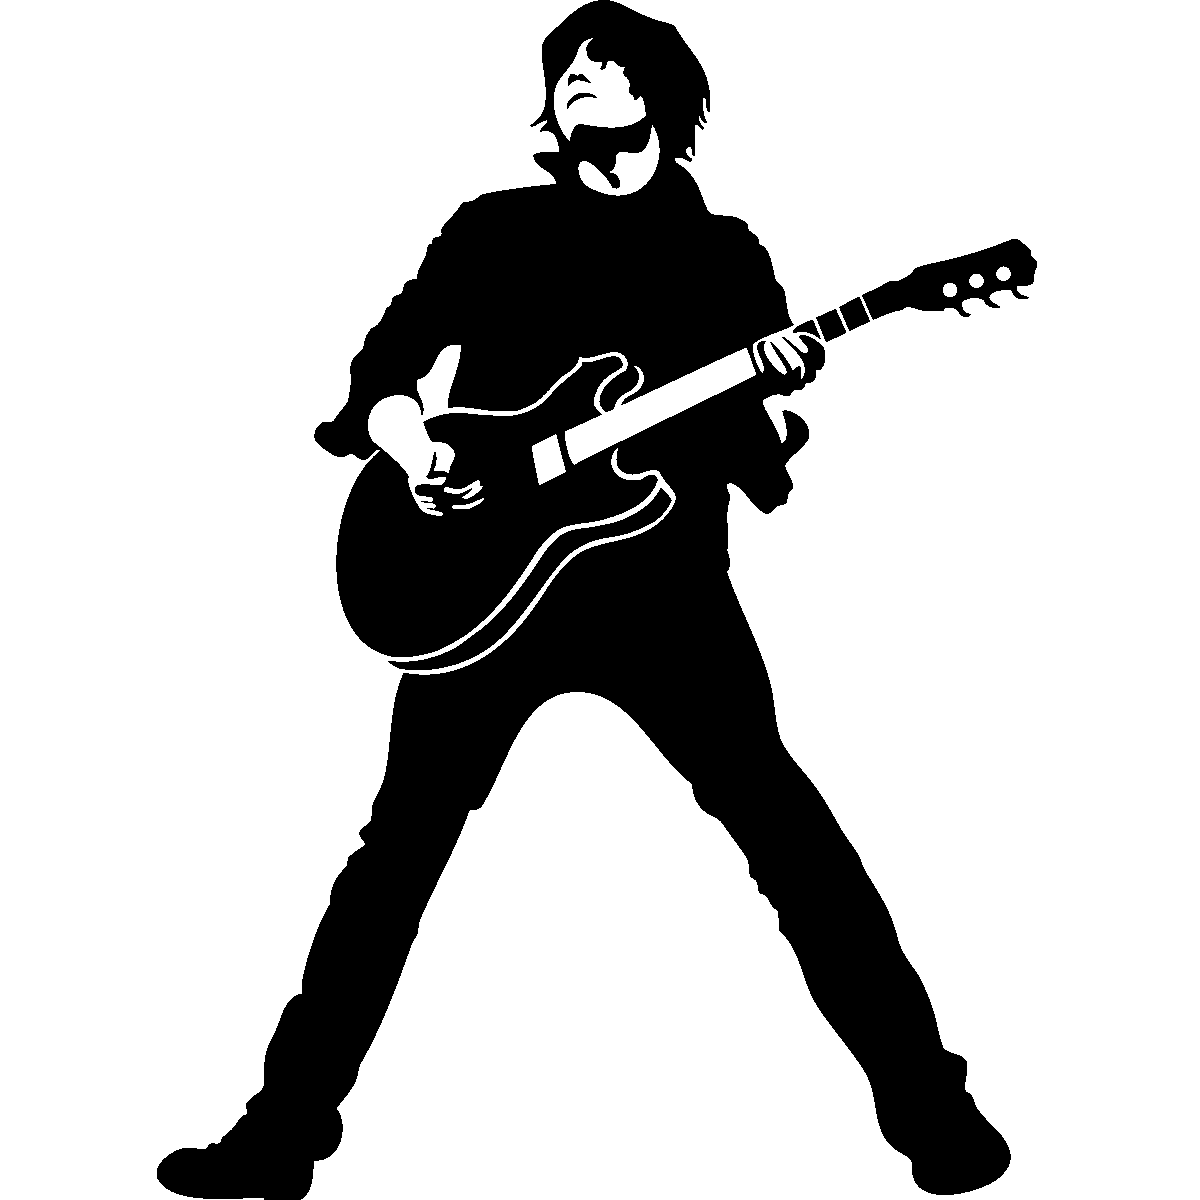 Guitarist Silhouette Decal Silhouette Guitarist